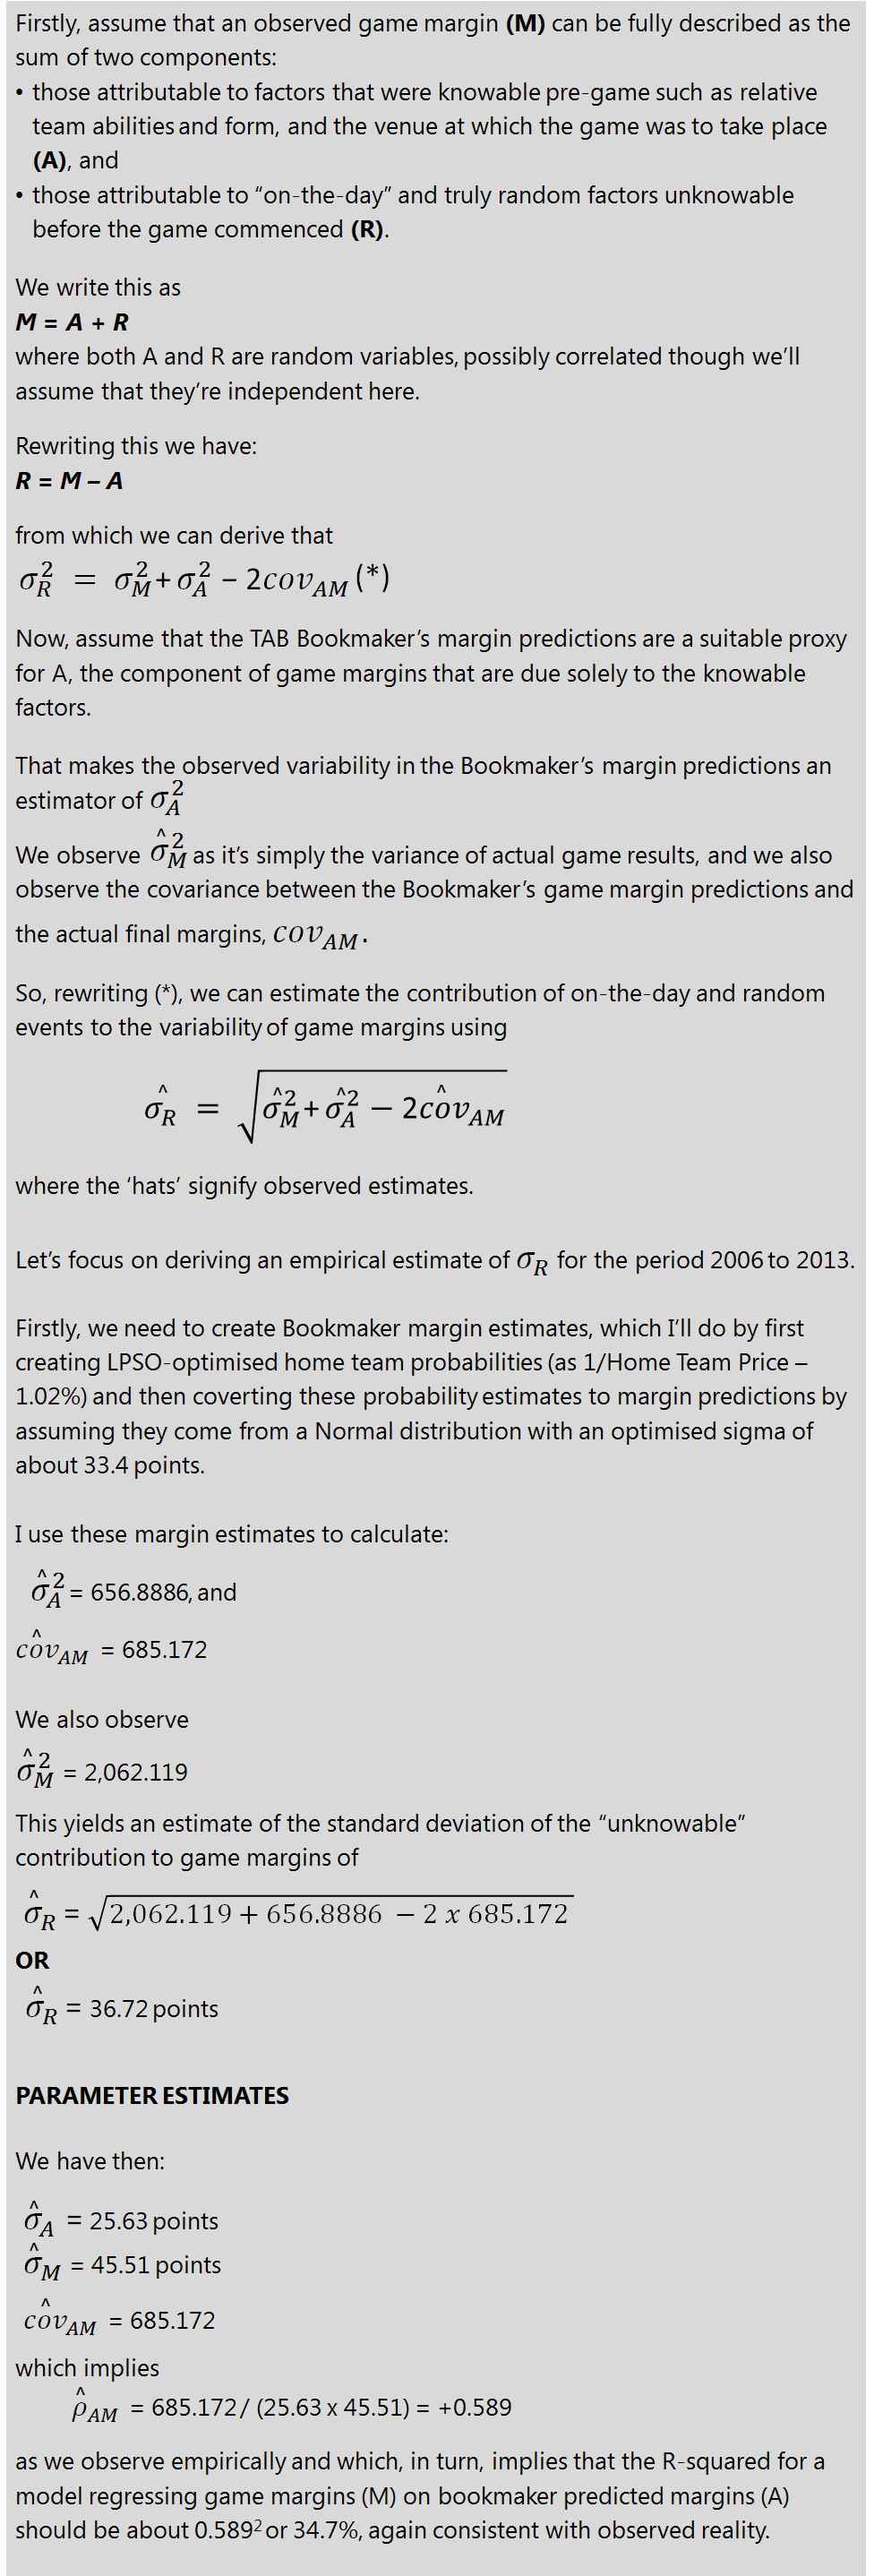 Deriving an Estimate of Sigma Random.png